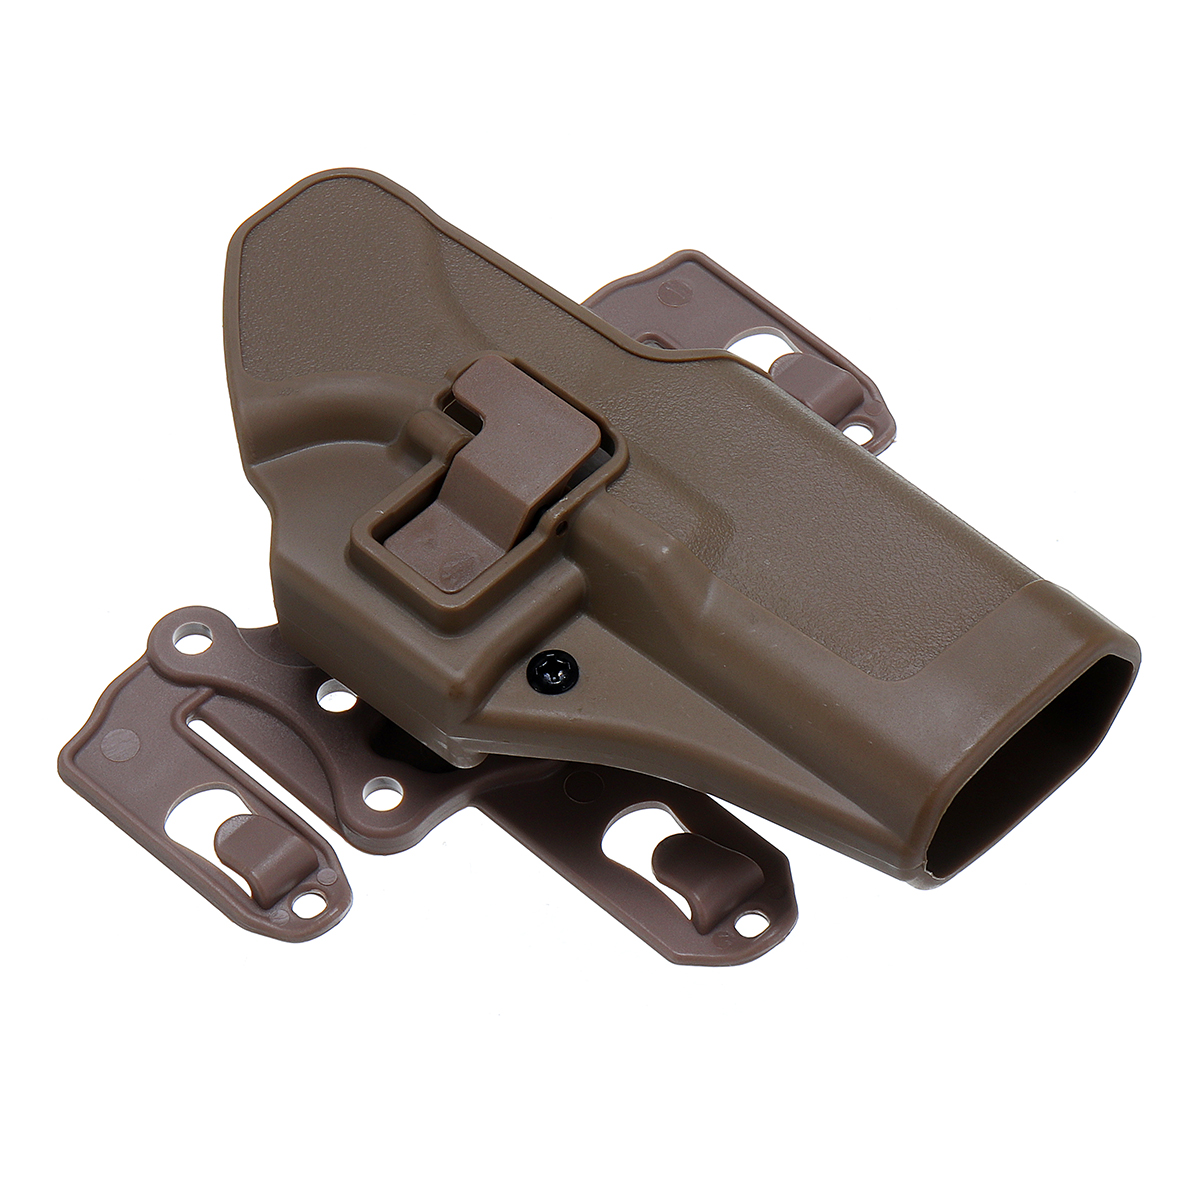 Right Waist Hand Belt Holster with Molle Platform for GLOCK 17 18 19 22 23  31